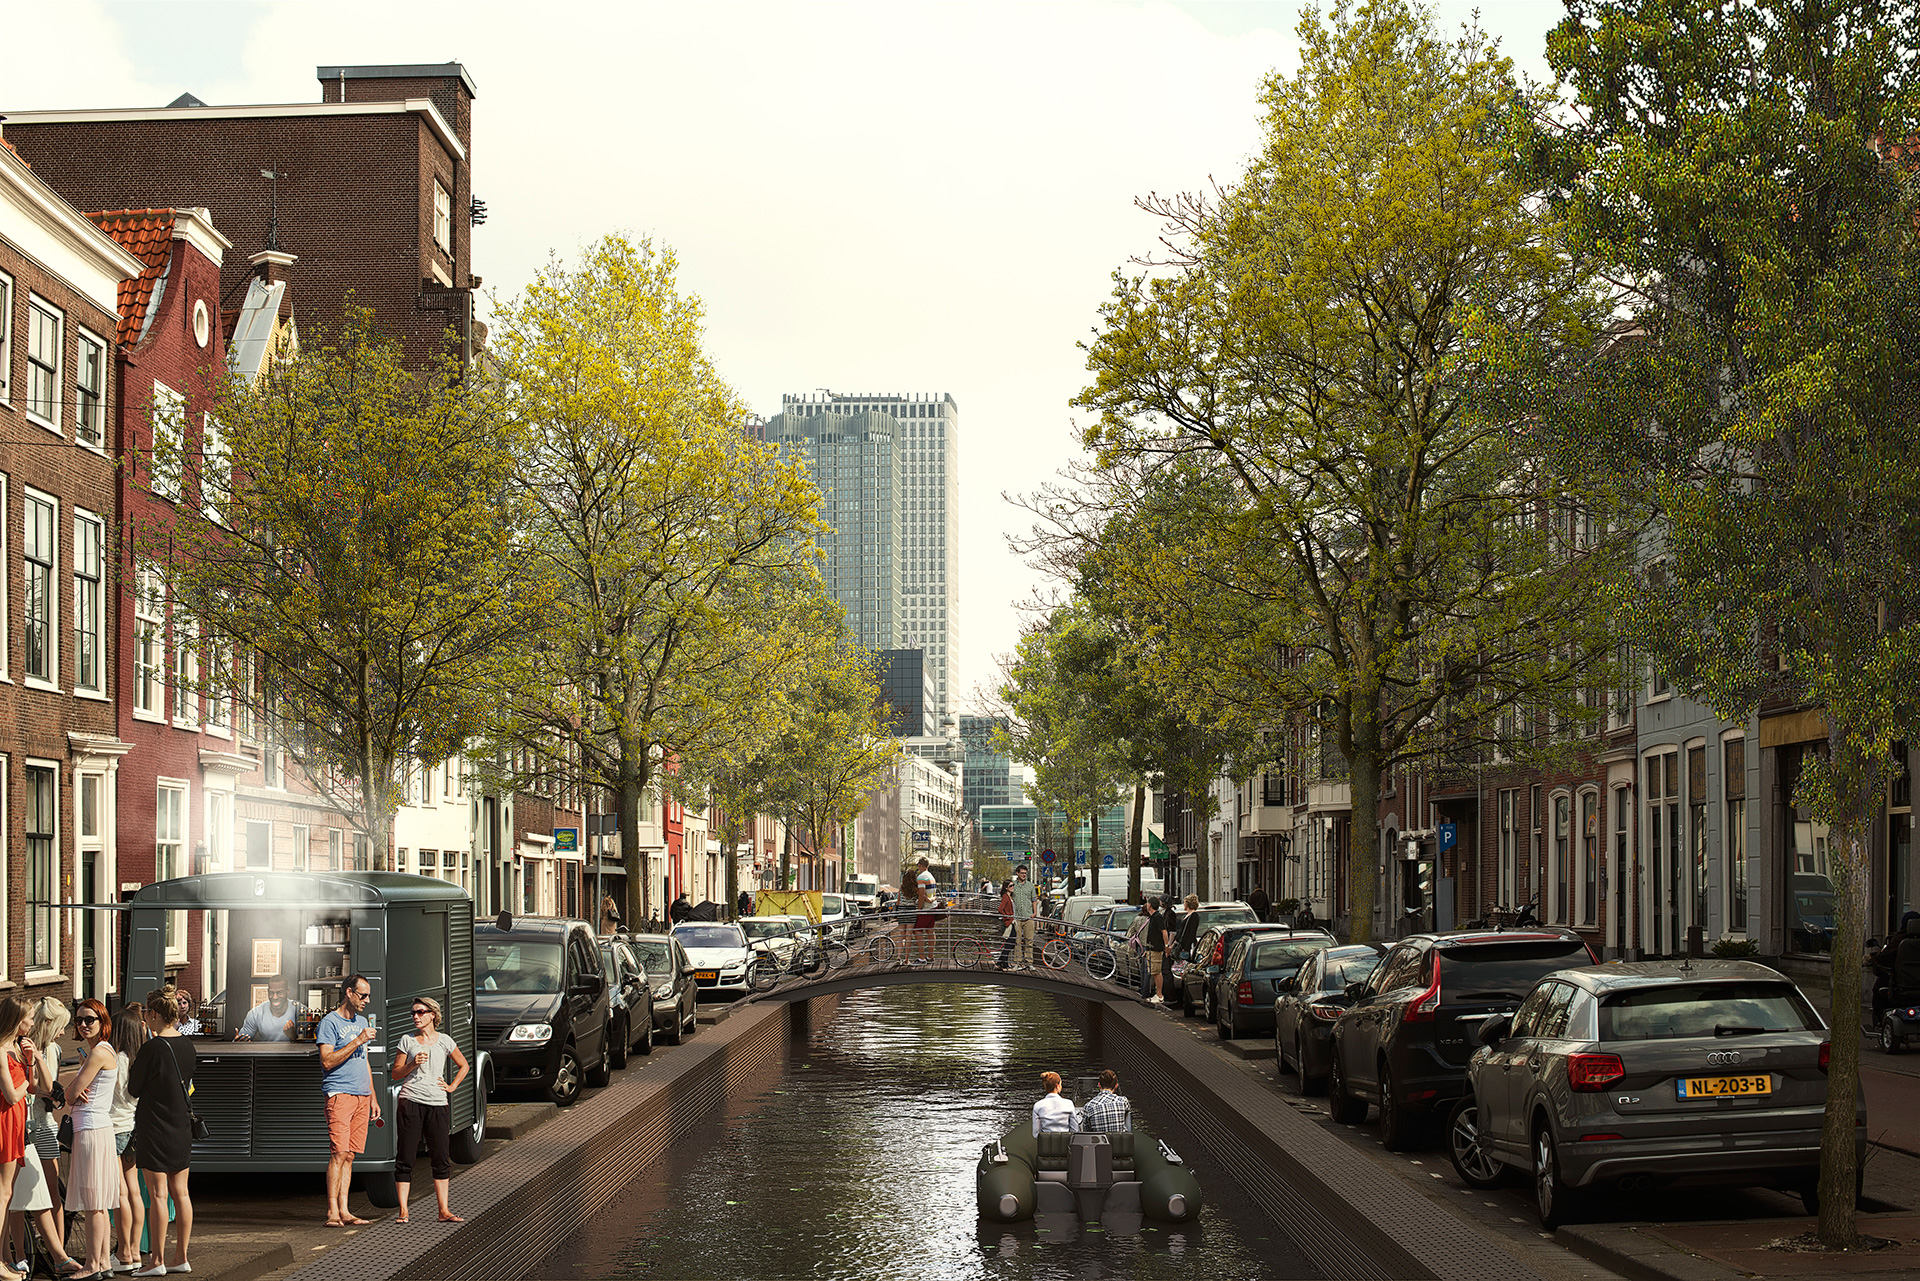 Amsterdamse Veerkade - Proposed | MVRDV| Hague Canals| STIR